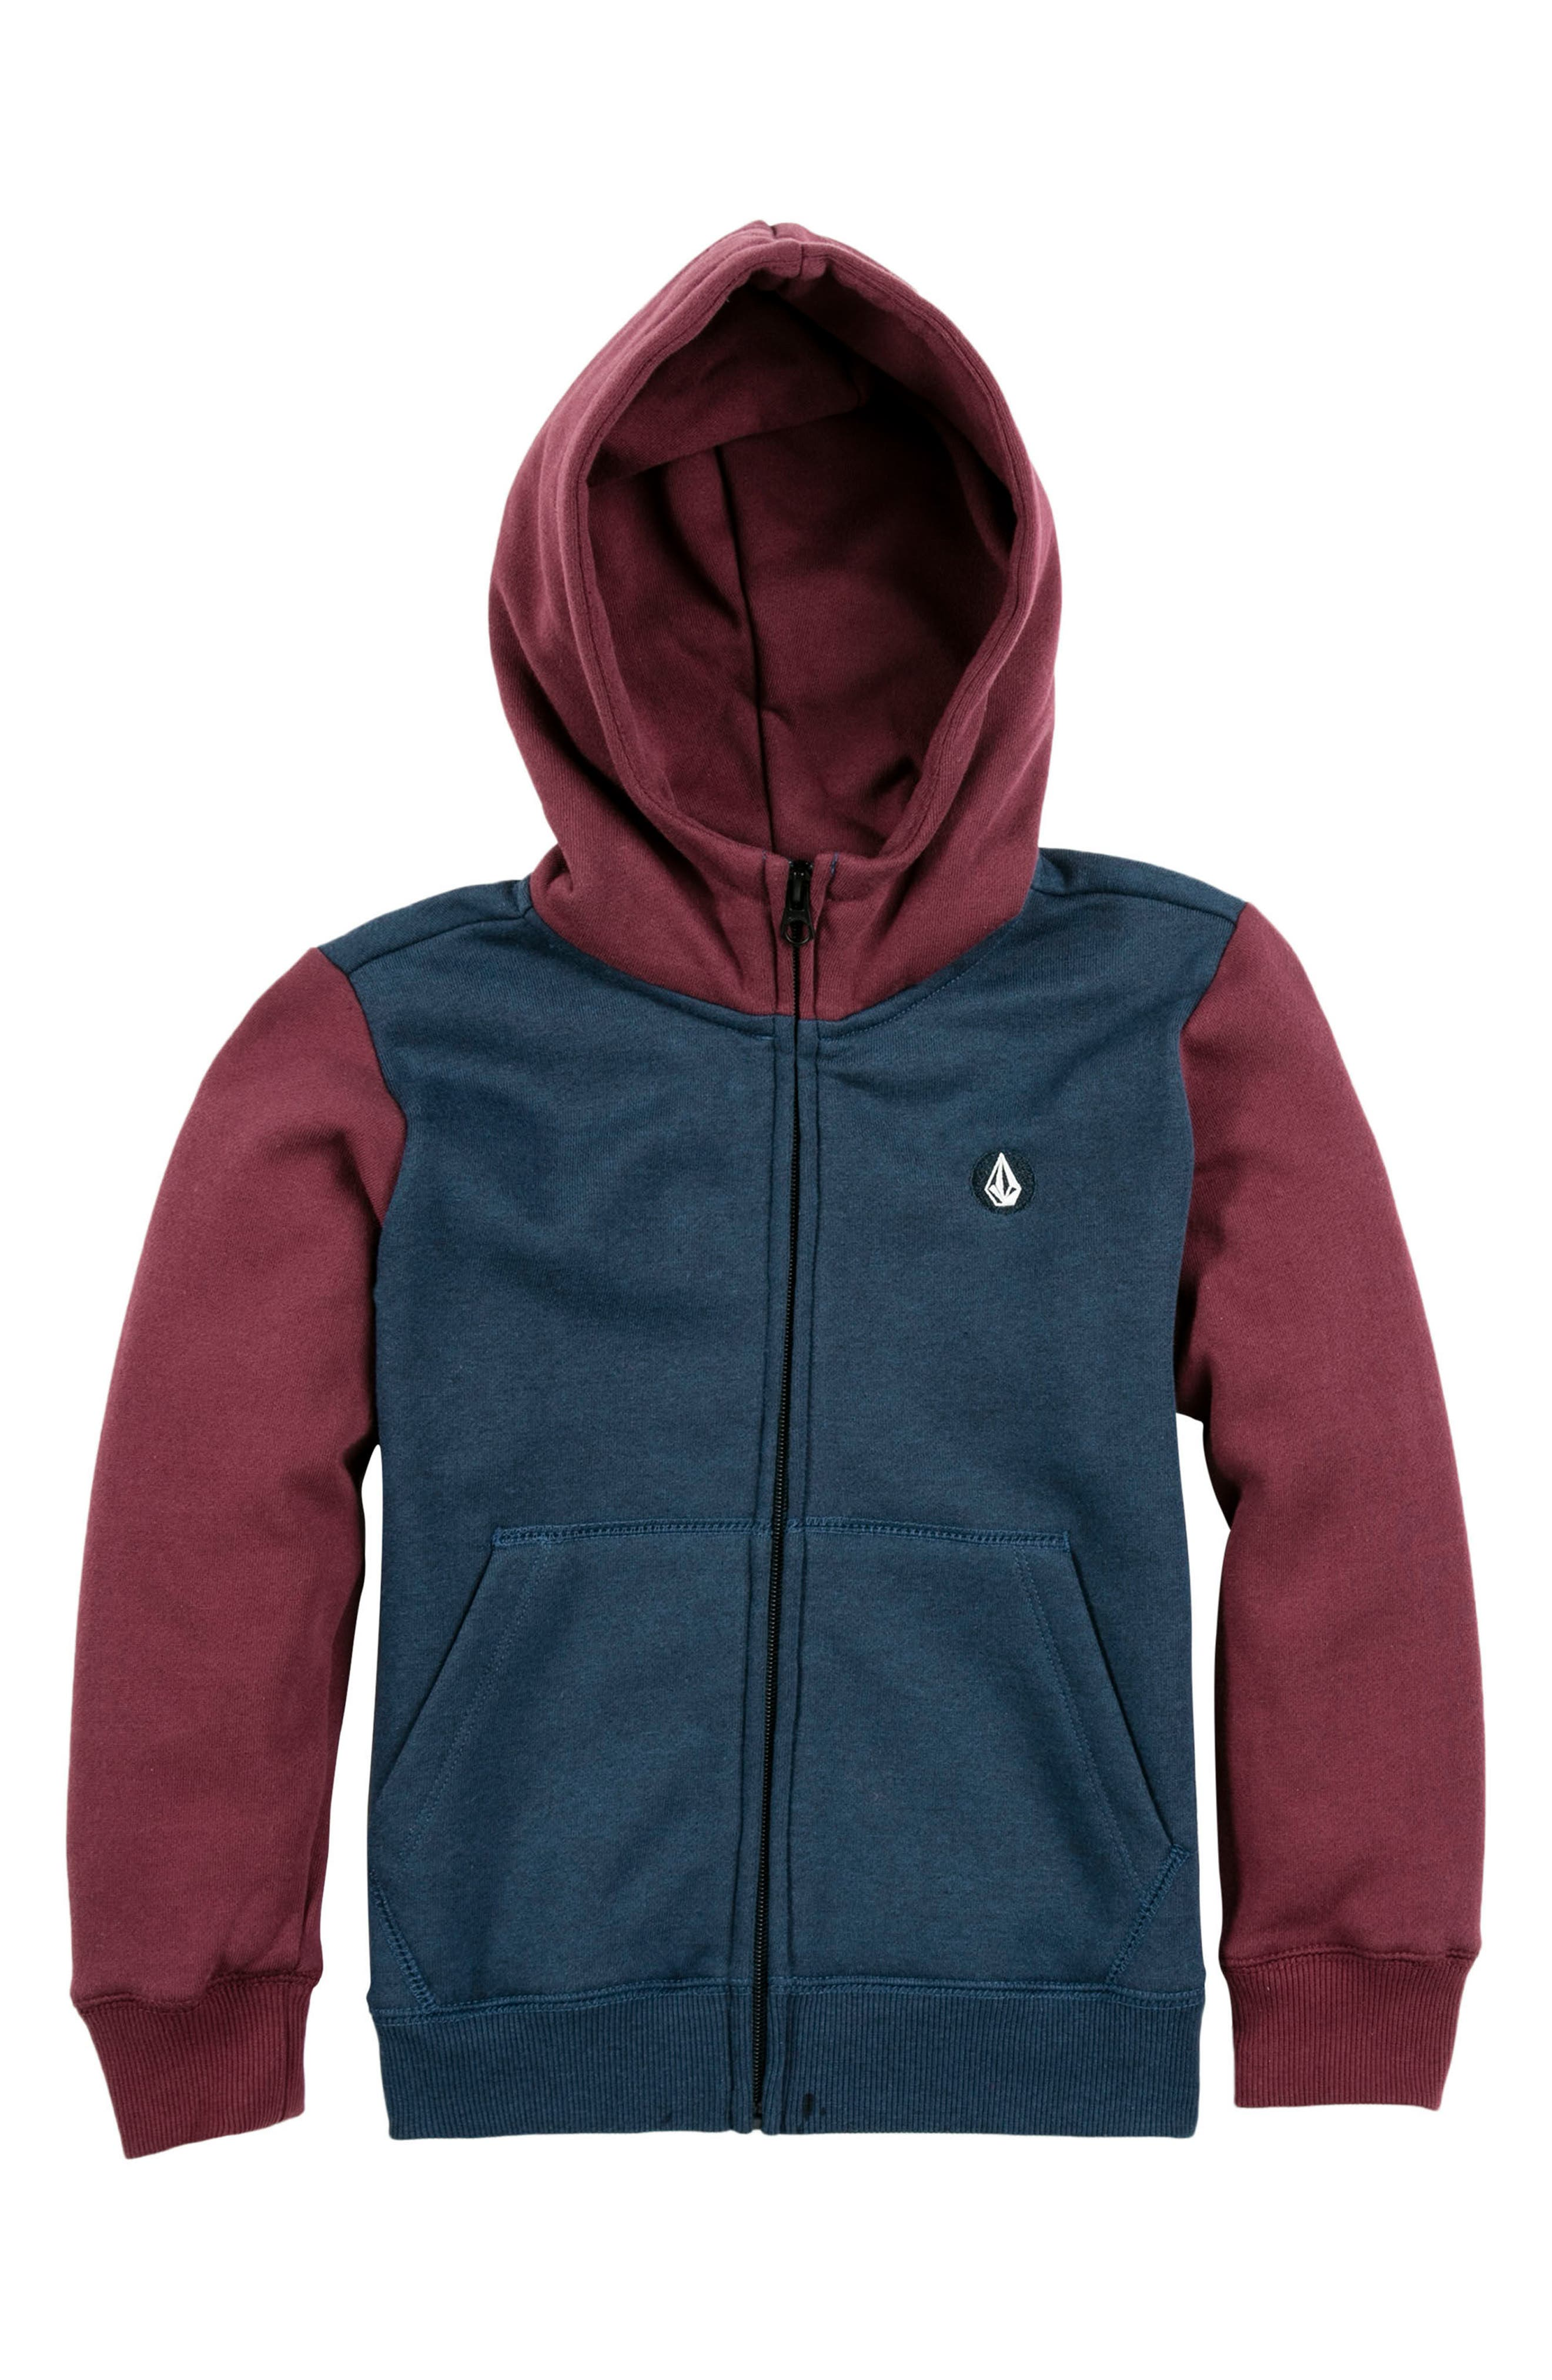 Main Image - Volcom Single Stone Zip Hoodie (Toddler Boys & Little Boys)